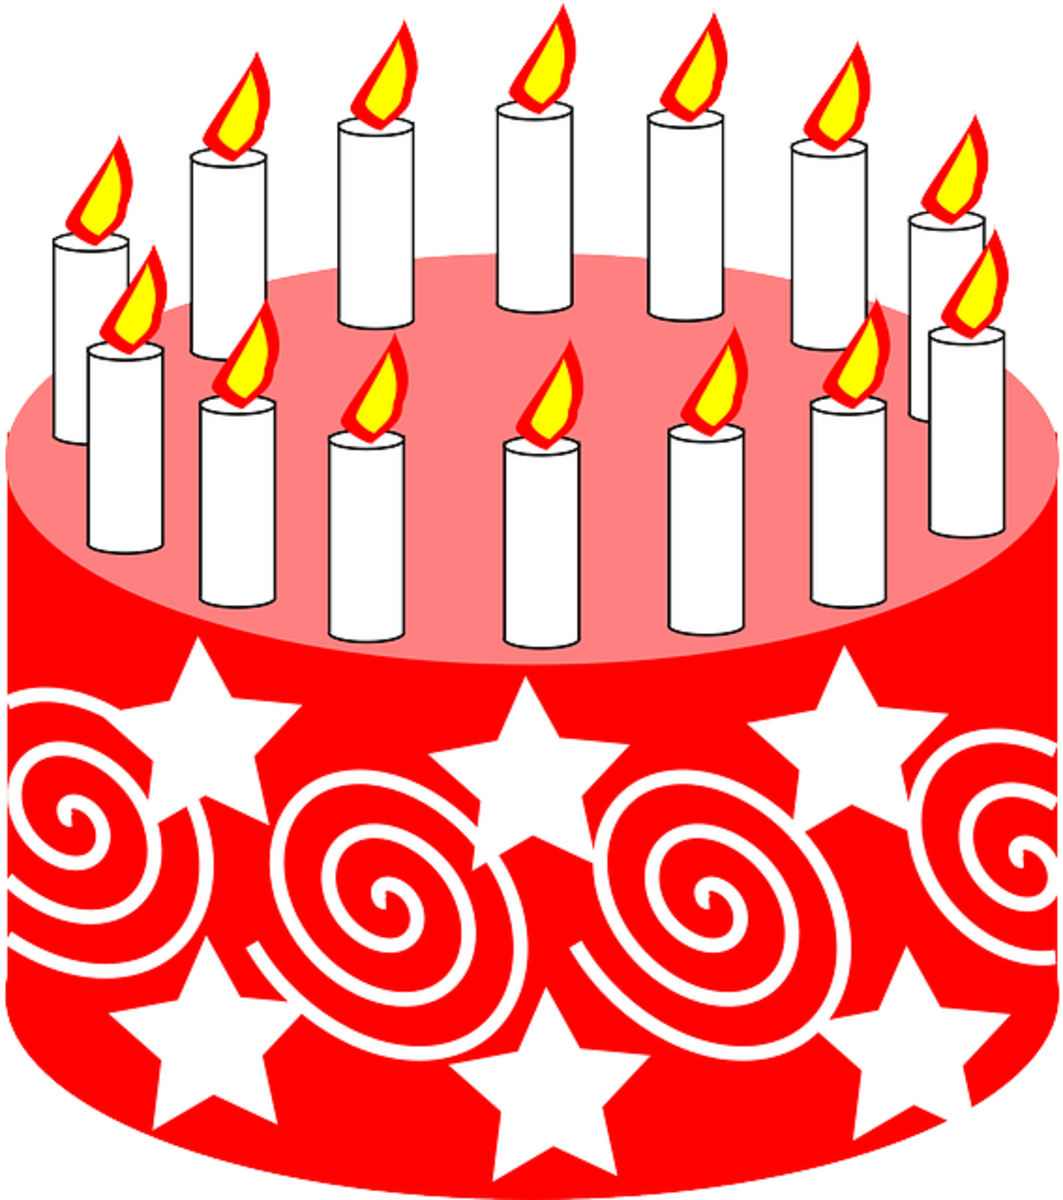 Red Birthday Cake with Swirls, Stars and White Candles